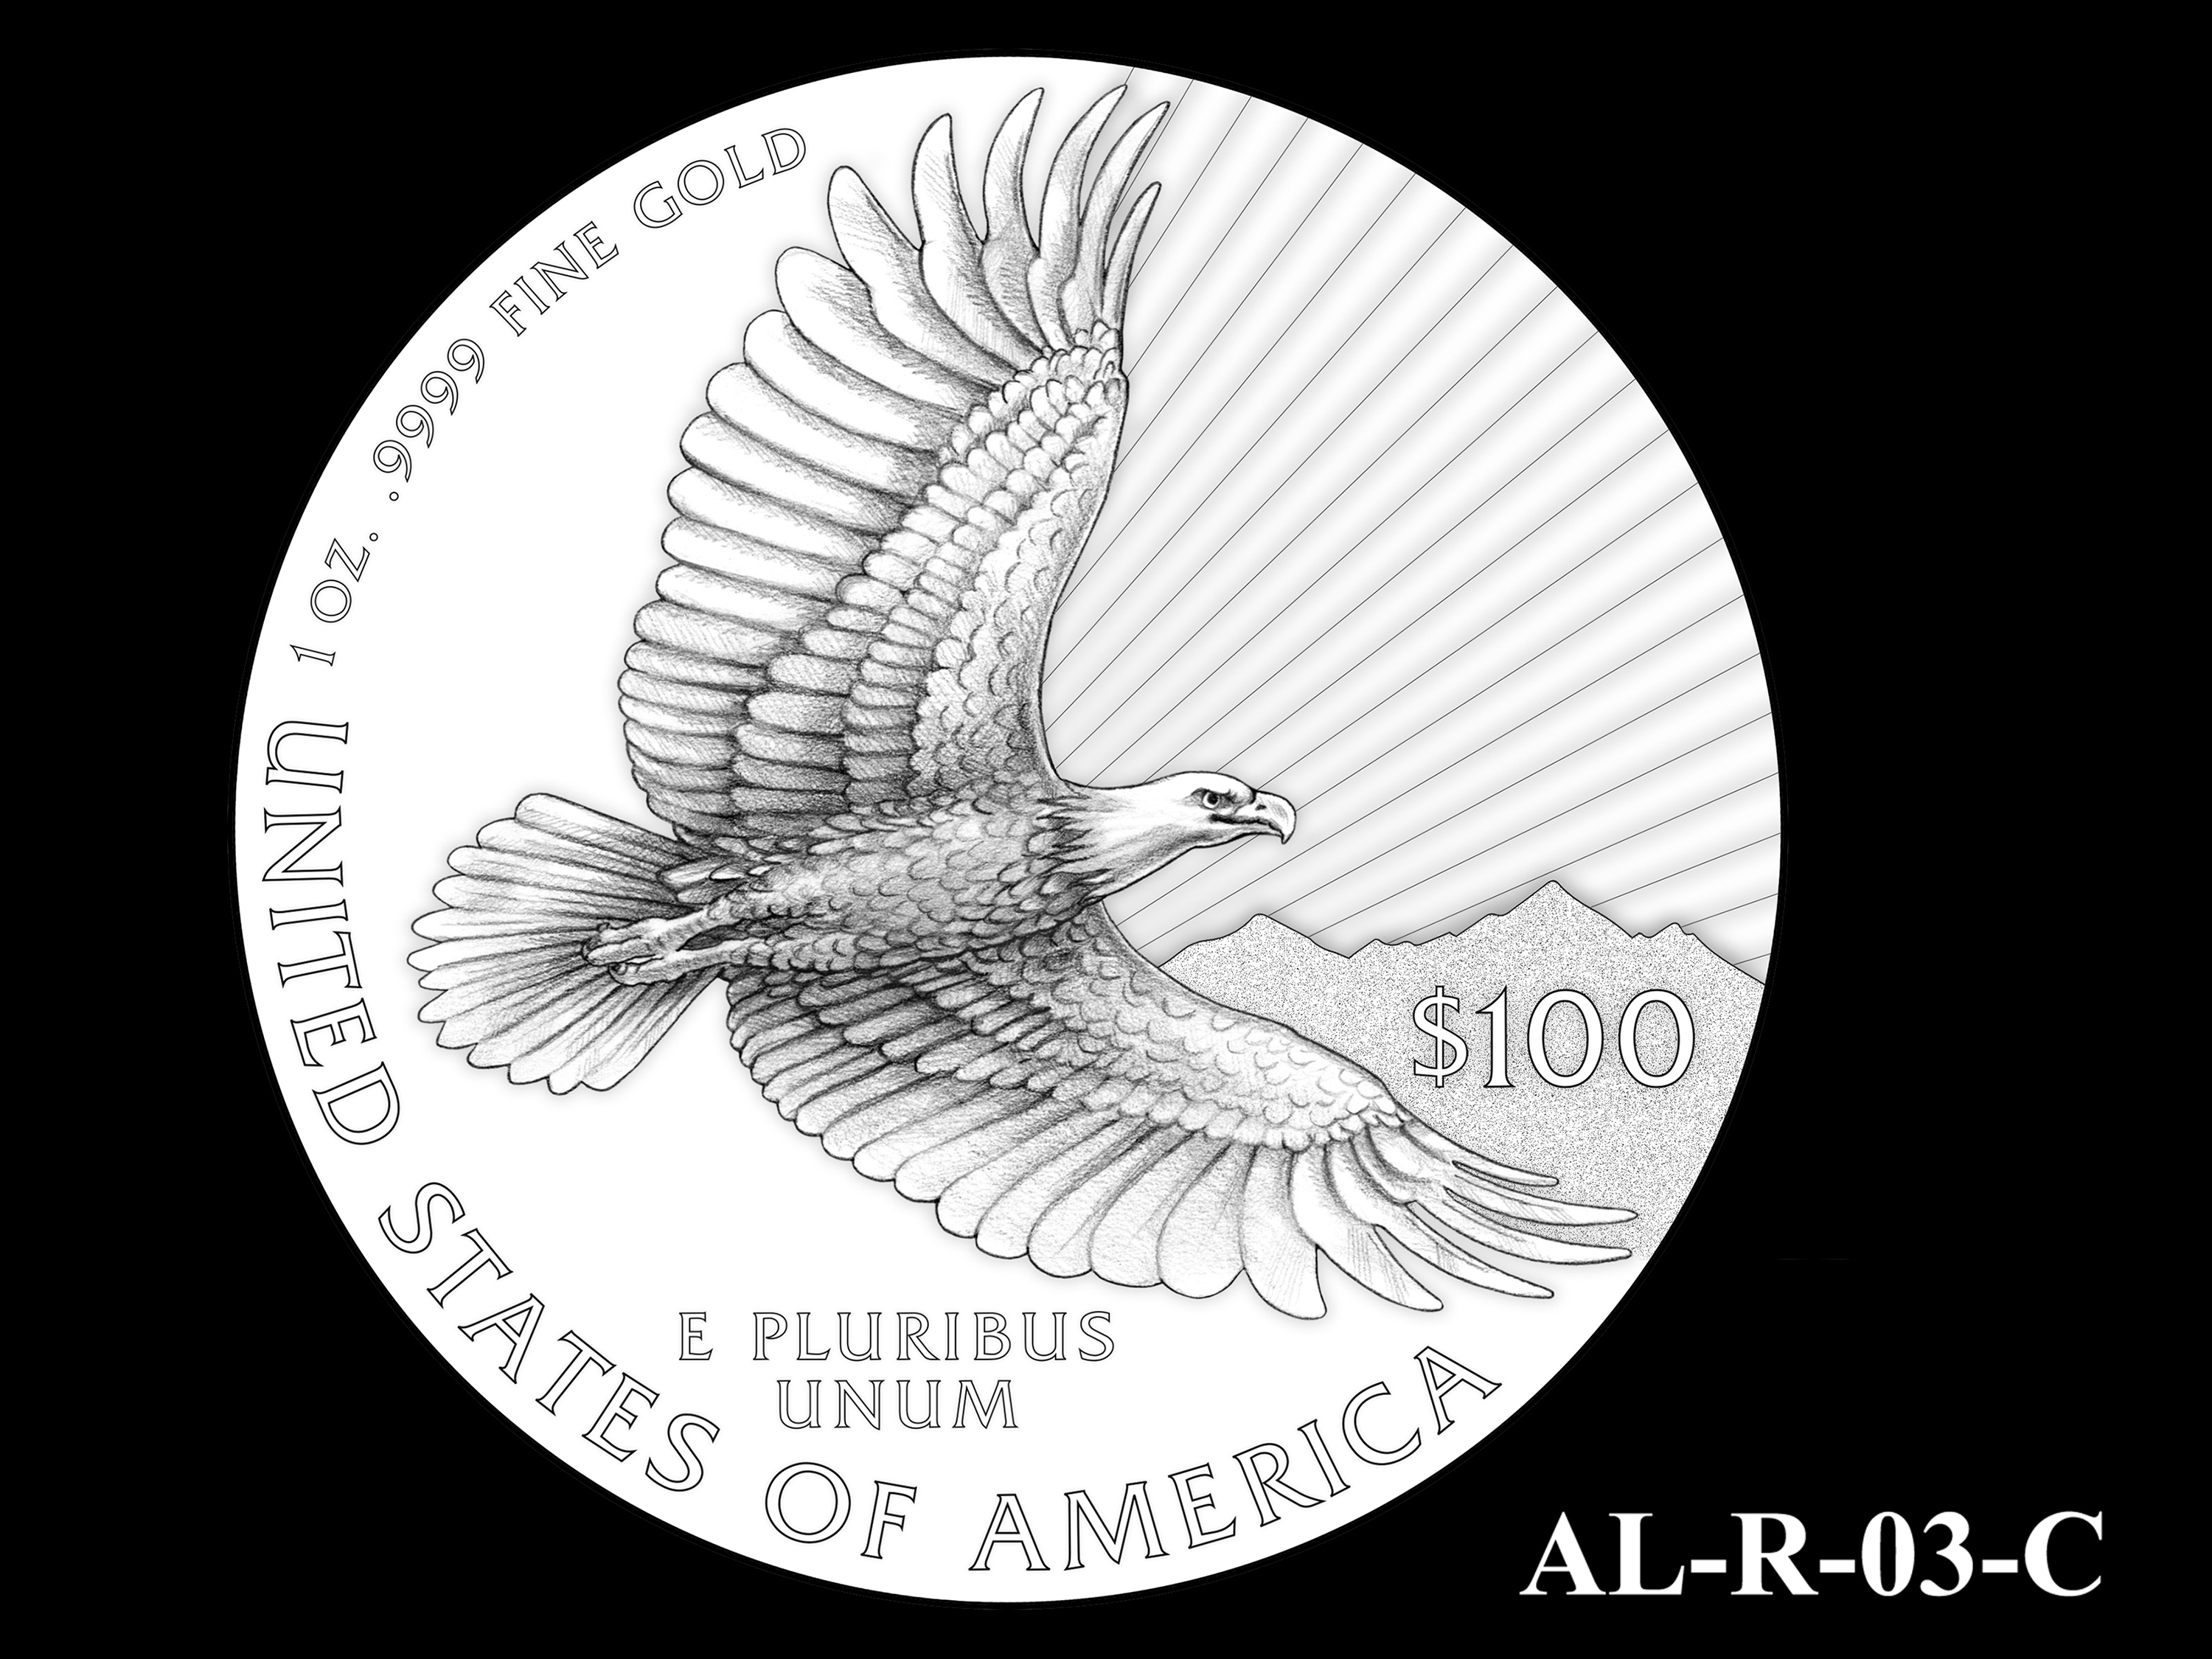 AL-R-03-C -- 2021 American Liberty Gold Coin and Silver Medal Program - Reverse